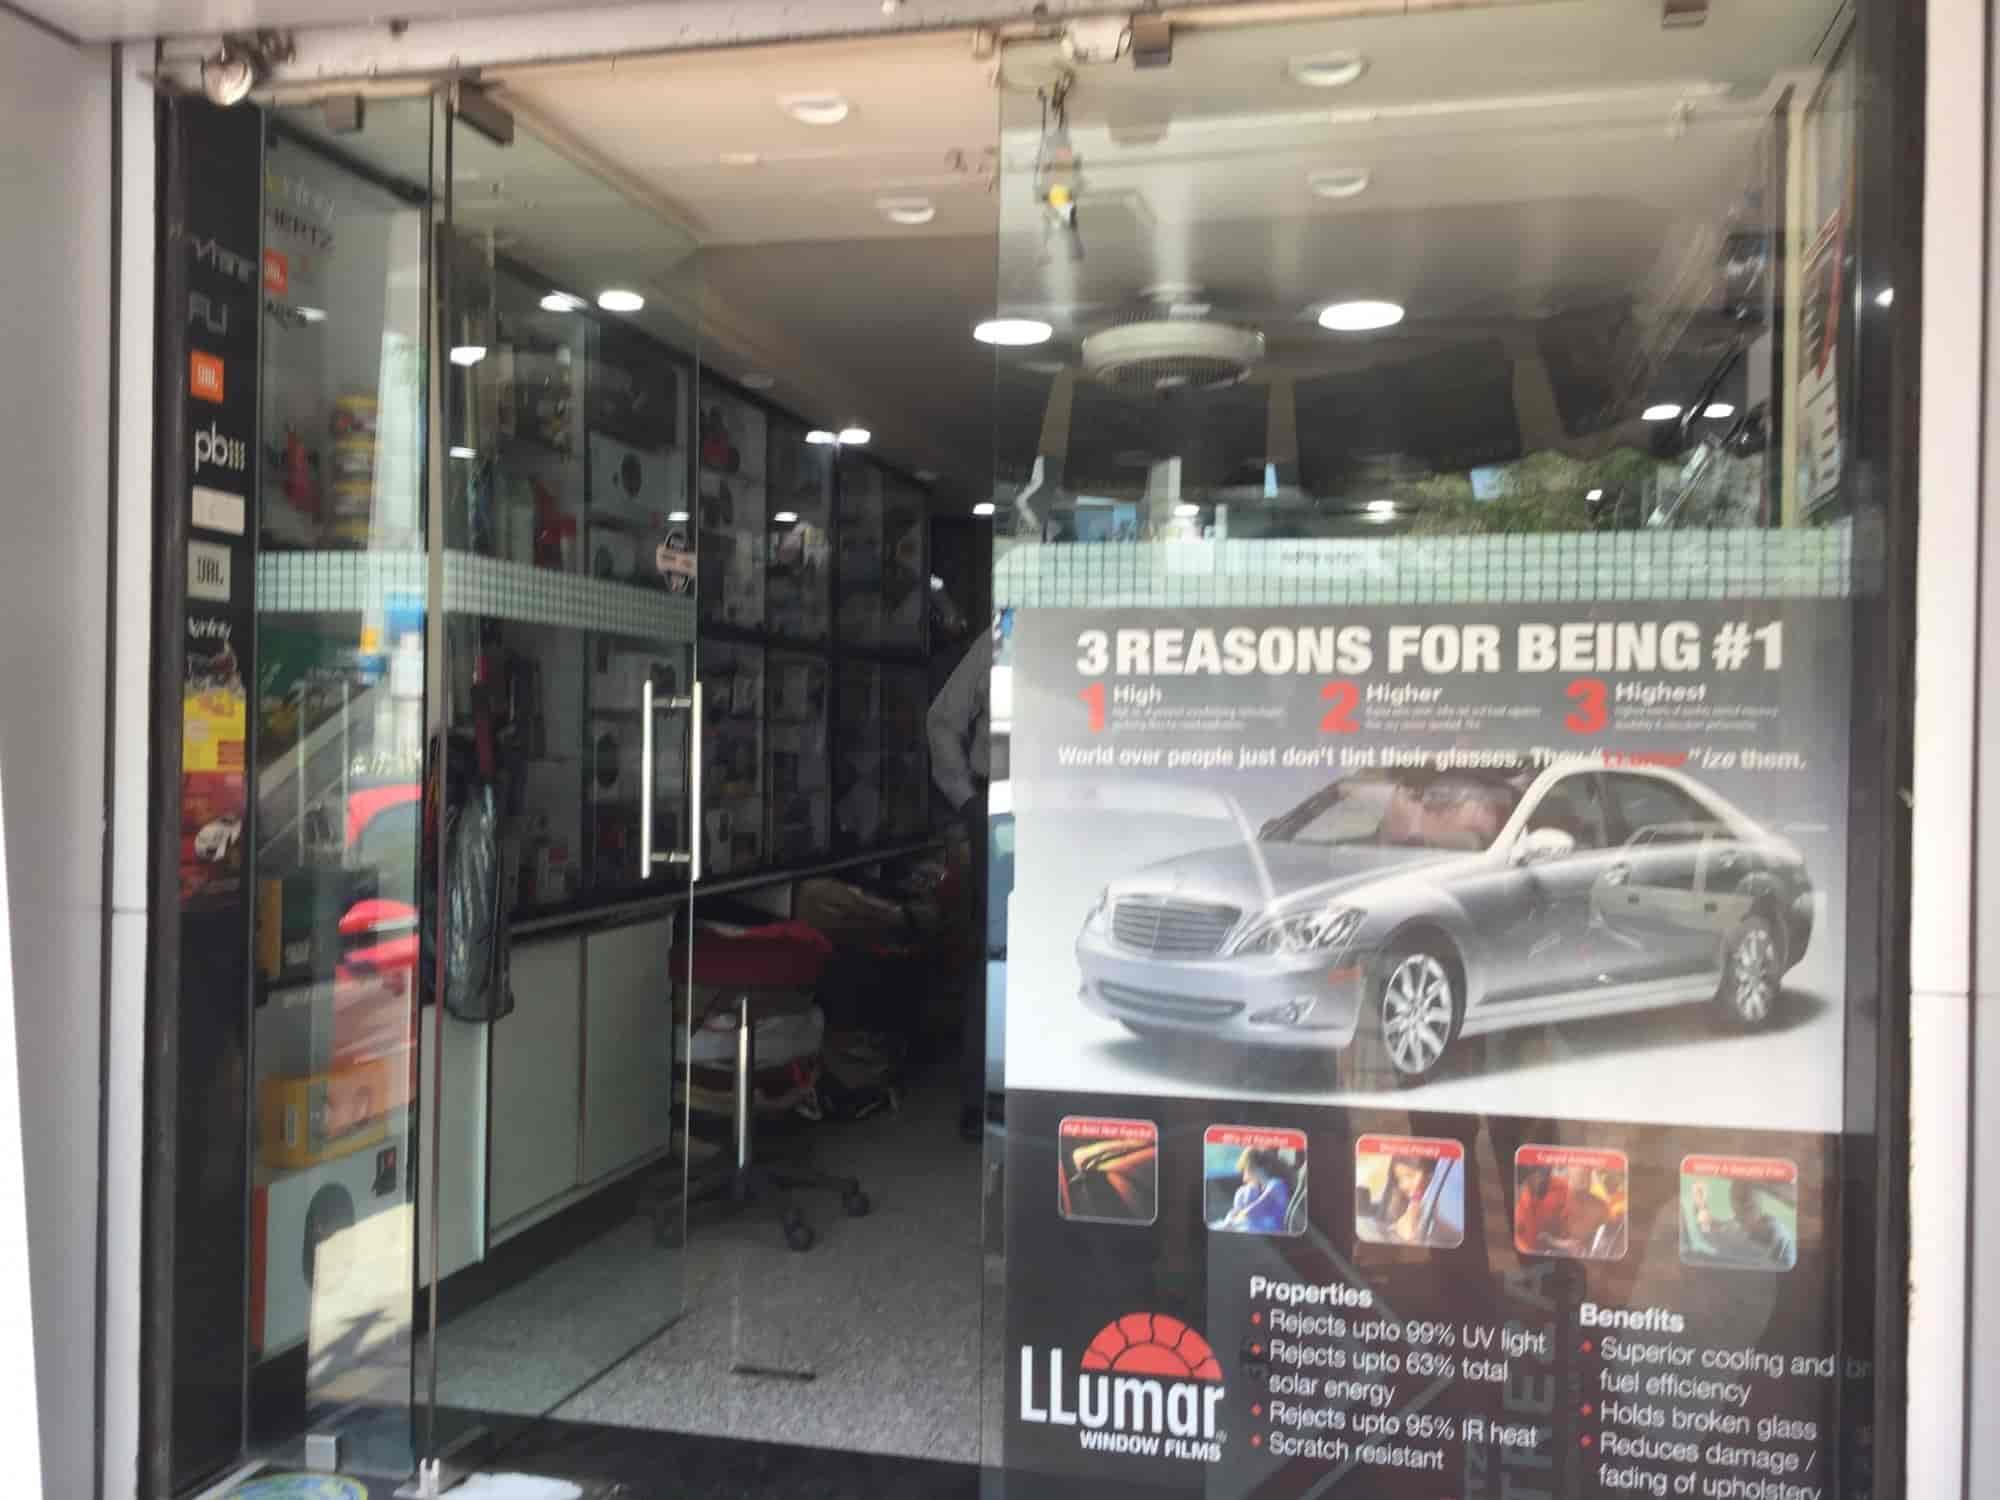 Sony Car Accessories Photos, Kondhwa Khurd, Pune- Pictures ...